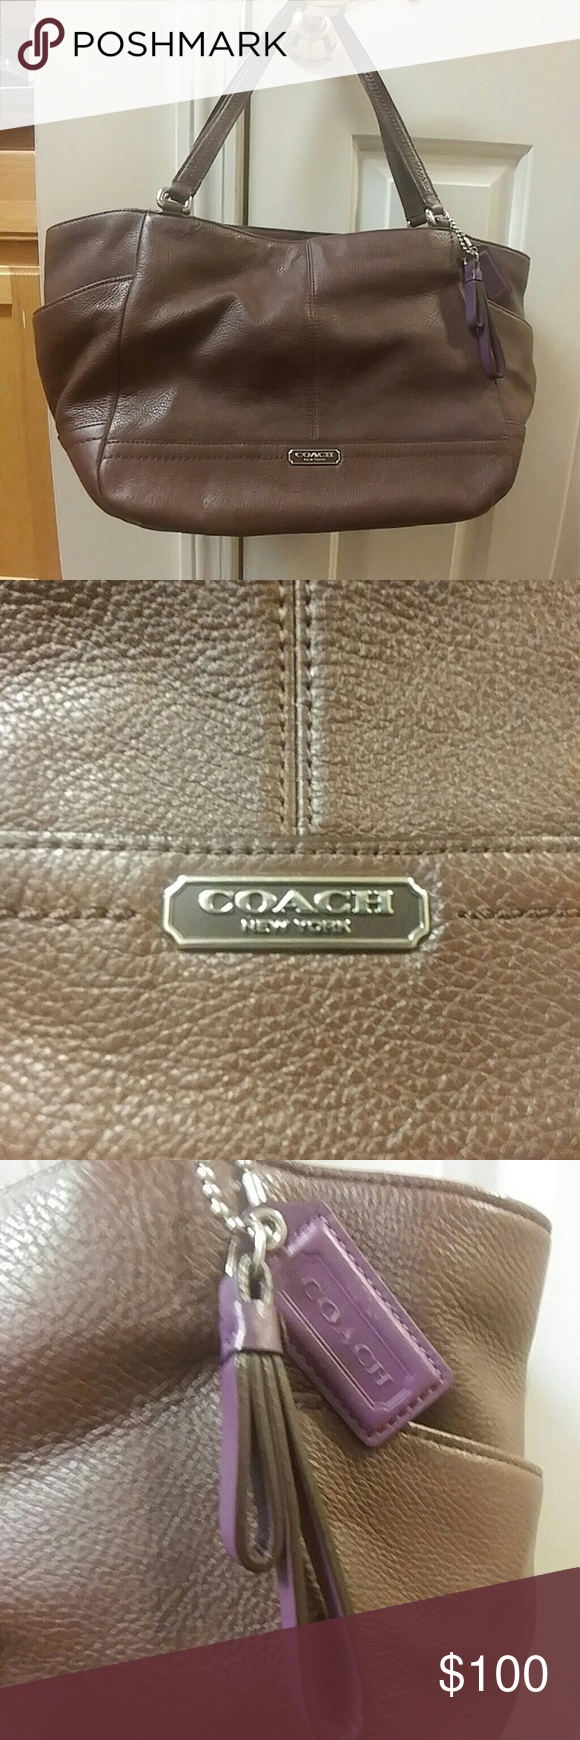 Coach Carrie Tote Coach Park leather Carrie Tote in Fig. Used a couple of times but in perfect condition. No scratches or marks! I'll consider all reasonable offers!   12Lx10Hx5w 8 depth Coach Bags Totes